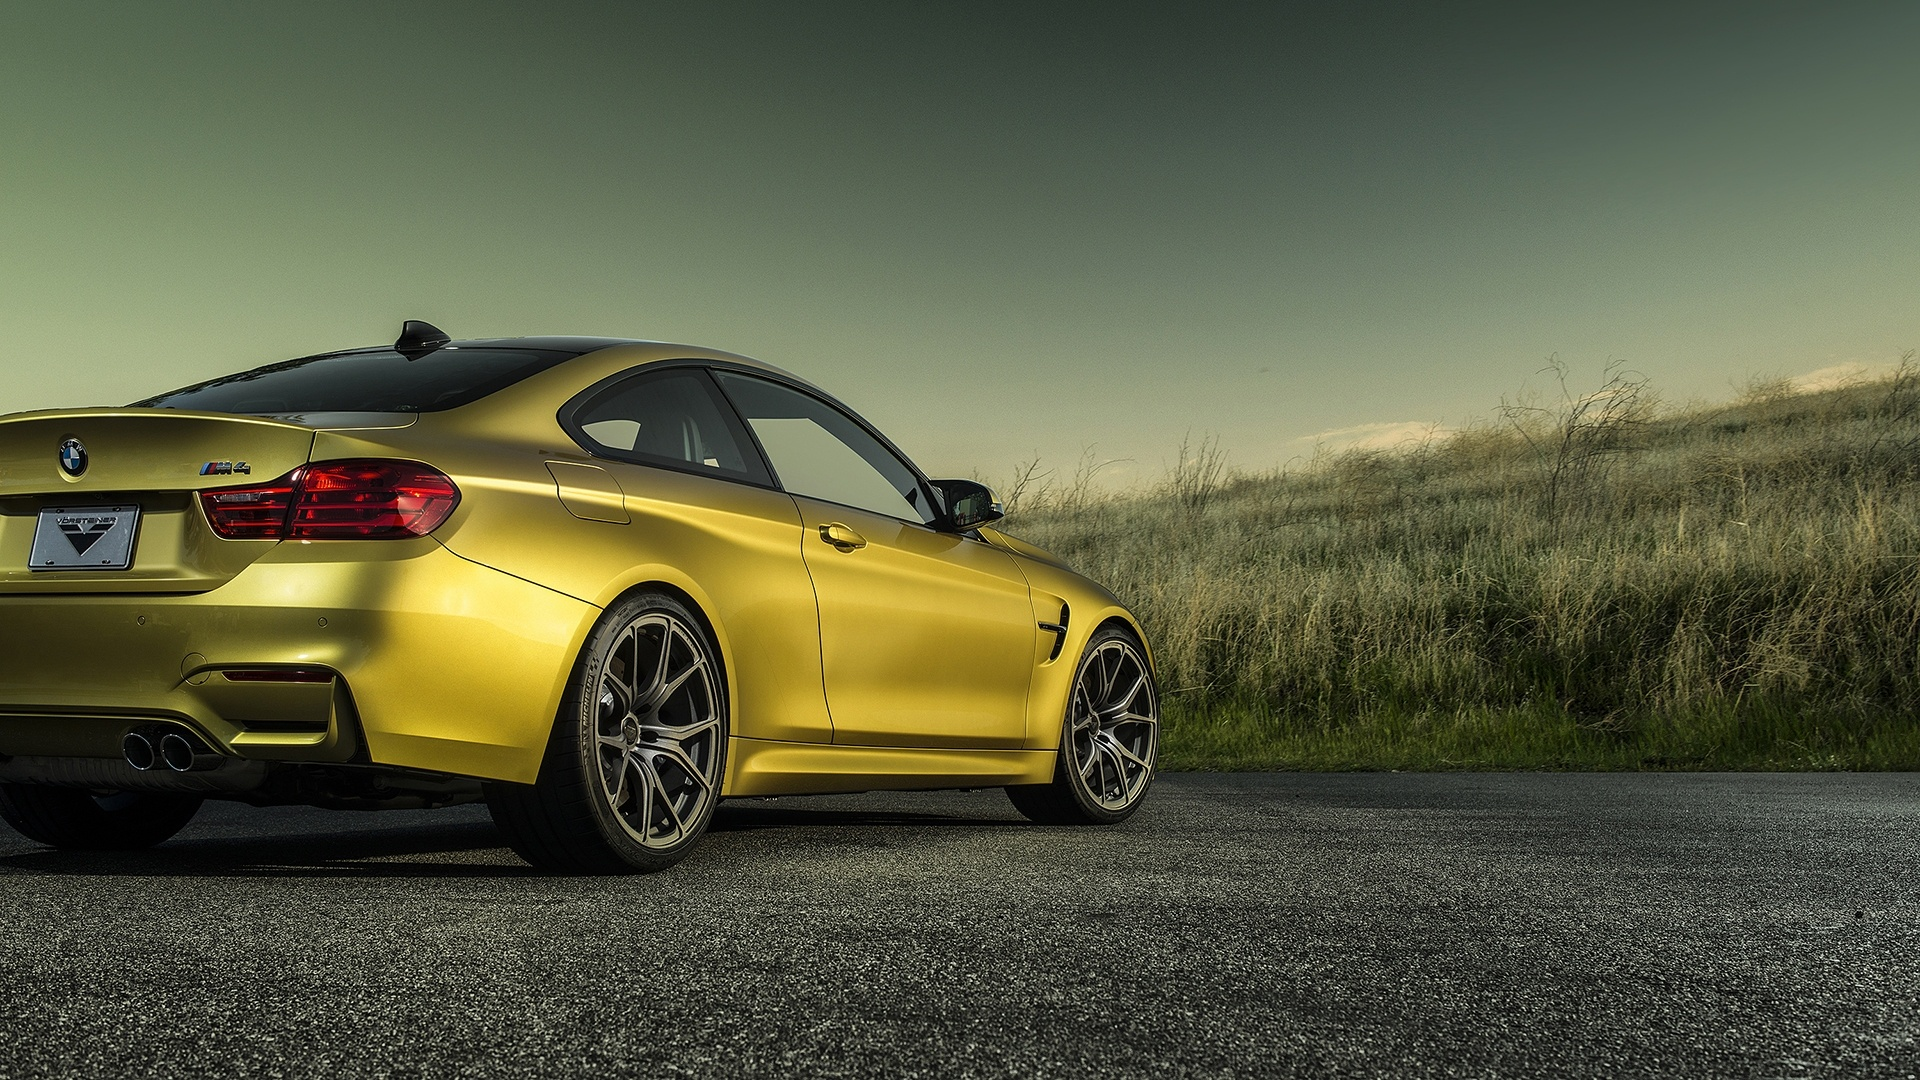 BMW M4 F82 (Golden)